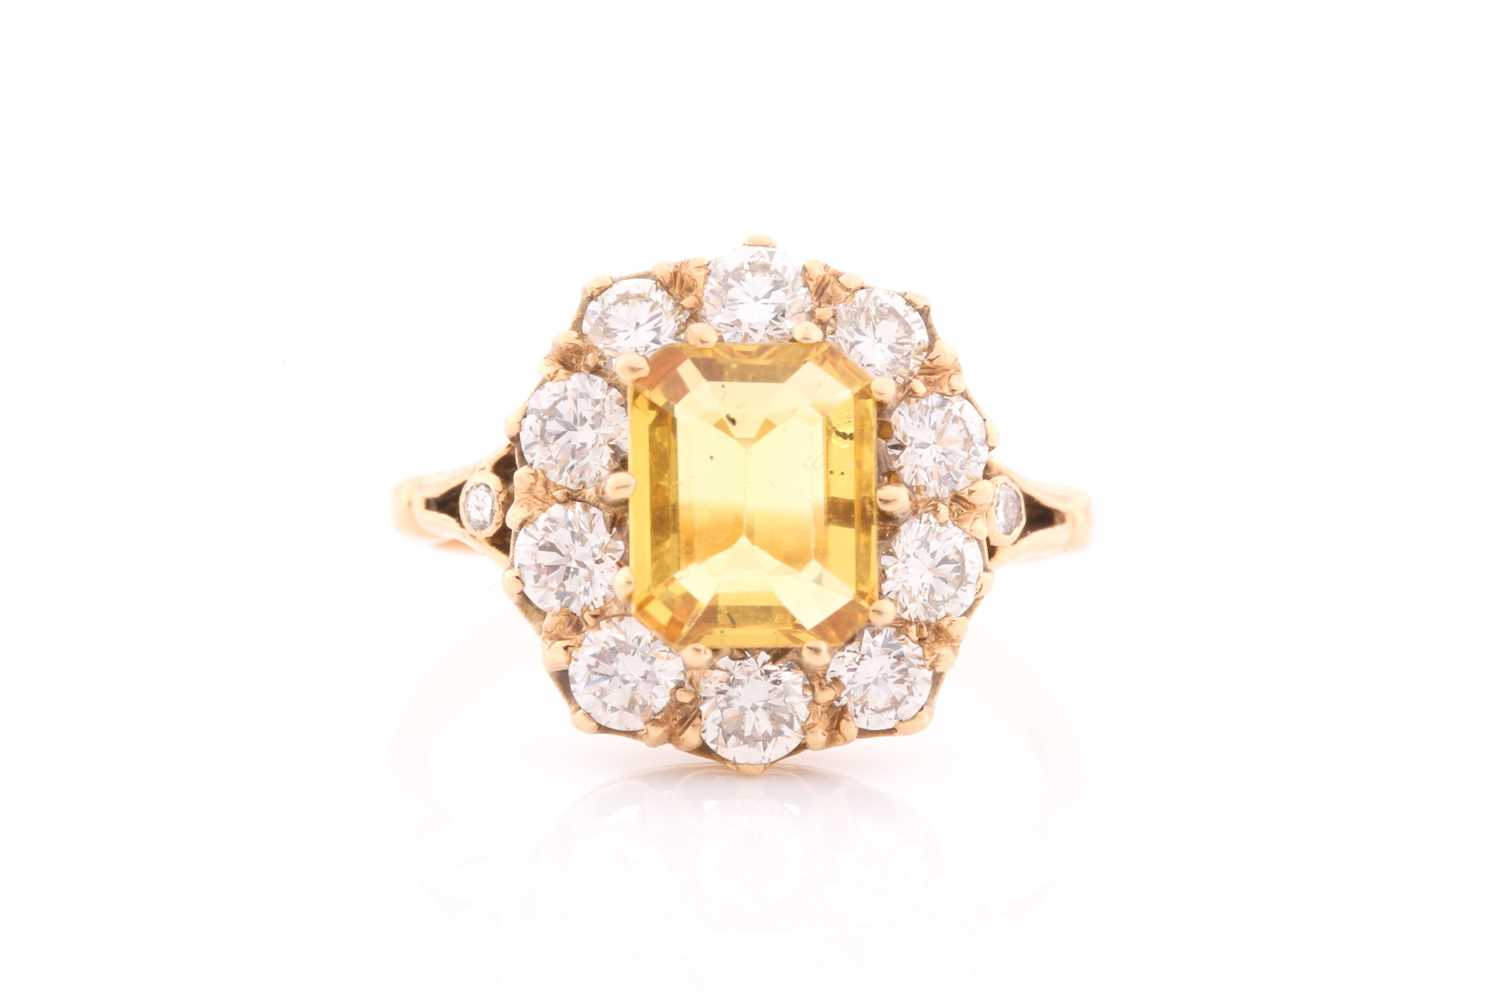 An 18ct yellow gold, diamond, and yellow sapphire dress ring, set with an emerald-cut sapphire of